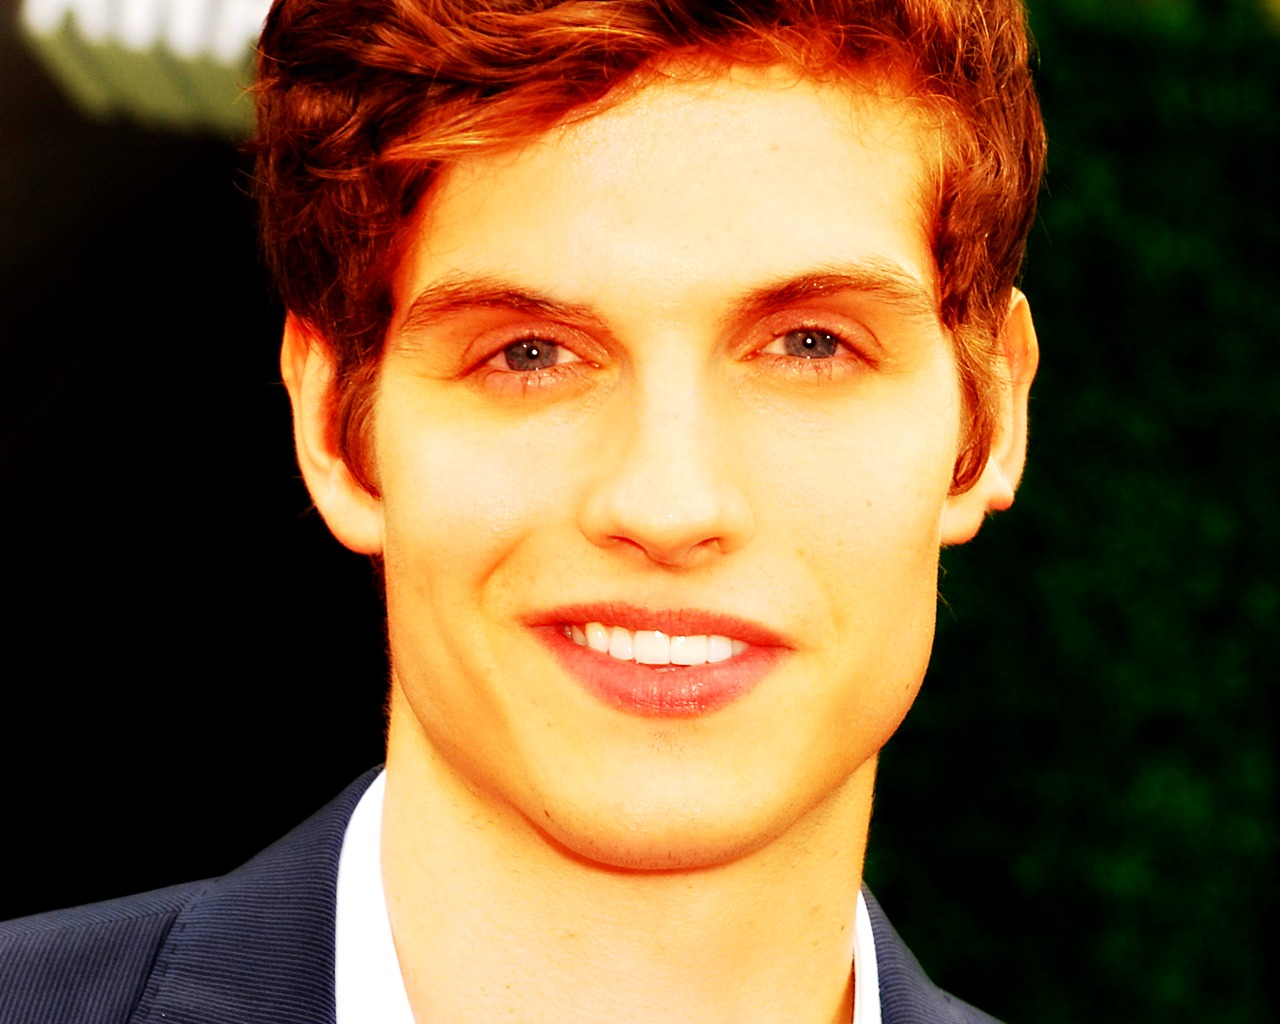 Daniel sharman smile